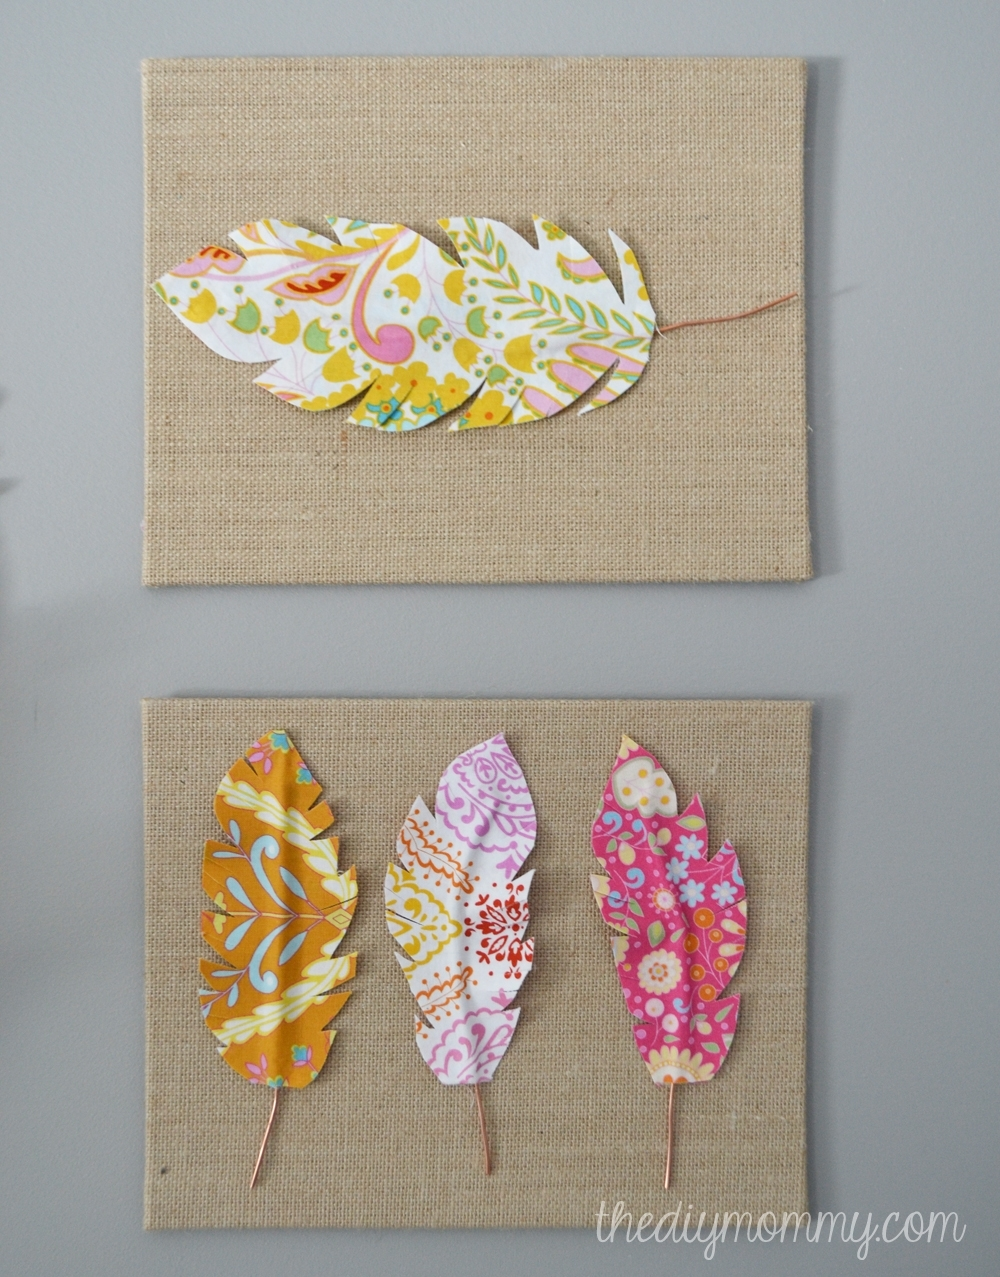 Make Fabric Feather Wall Art | The Diy Mommy In Most Current Fabric For Canvas Wall Art (View 9 of 15)